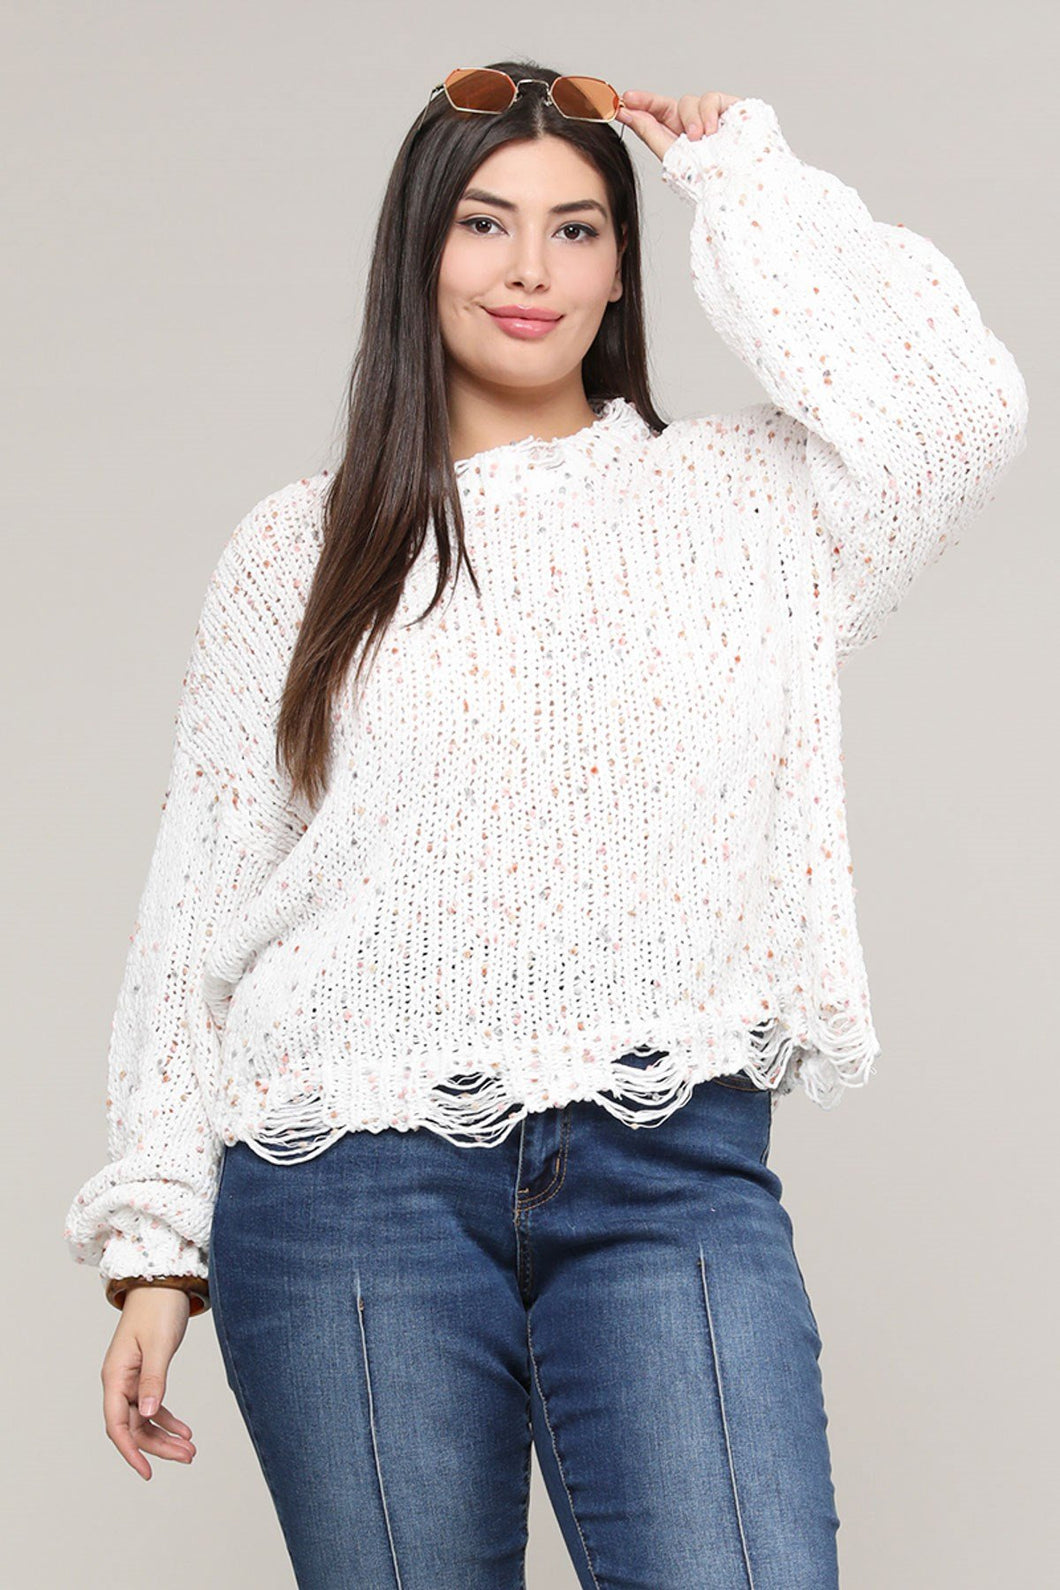 Short Confetti Sweater White Xl Clothing